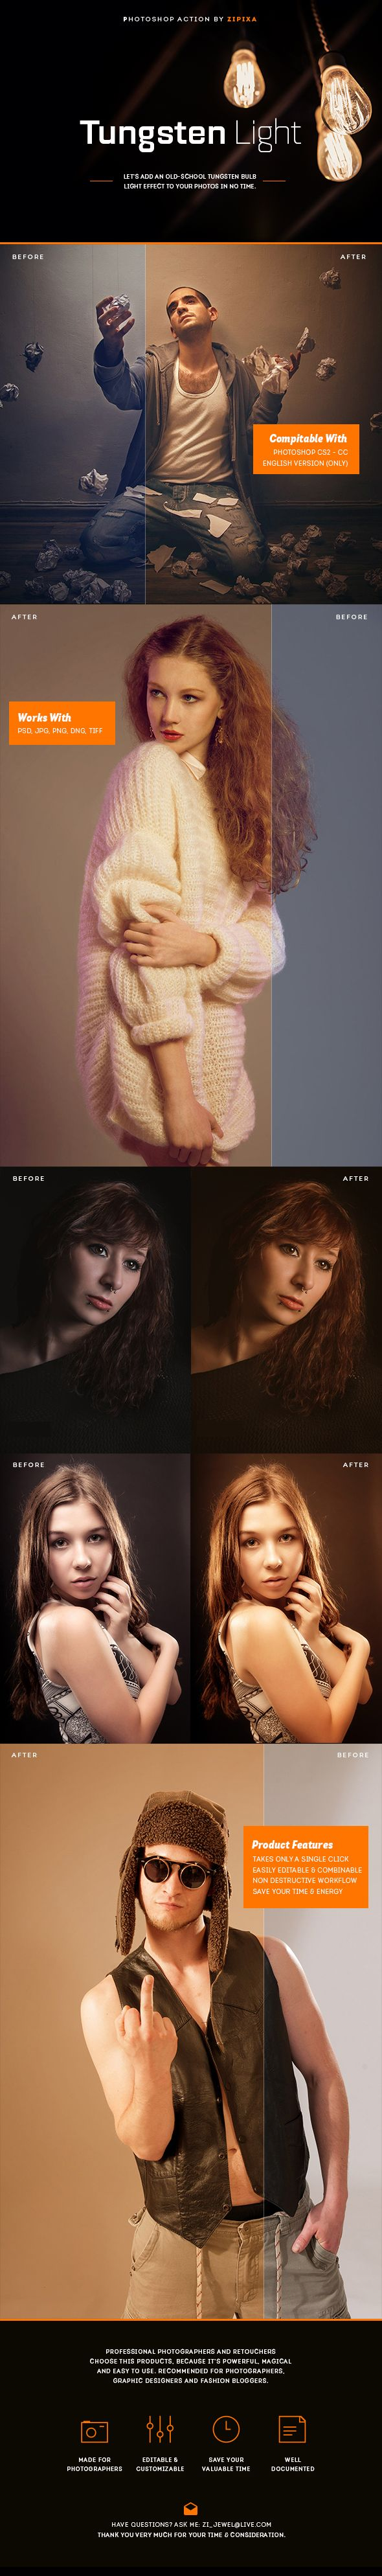 Tungsten Light Action — Photoshop ATN #hdr effect #party • Available here → https://graphicriver.net/item/tungsten-light-action/15274170?ref=pxcr